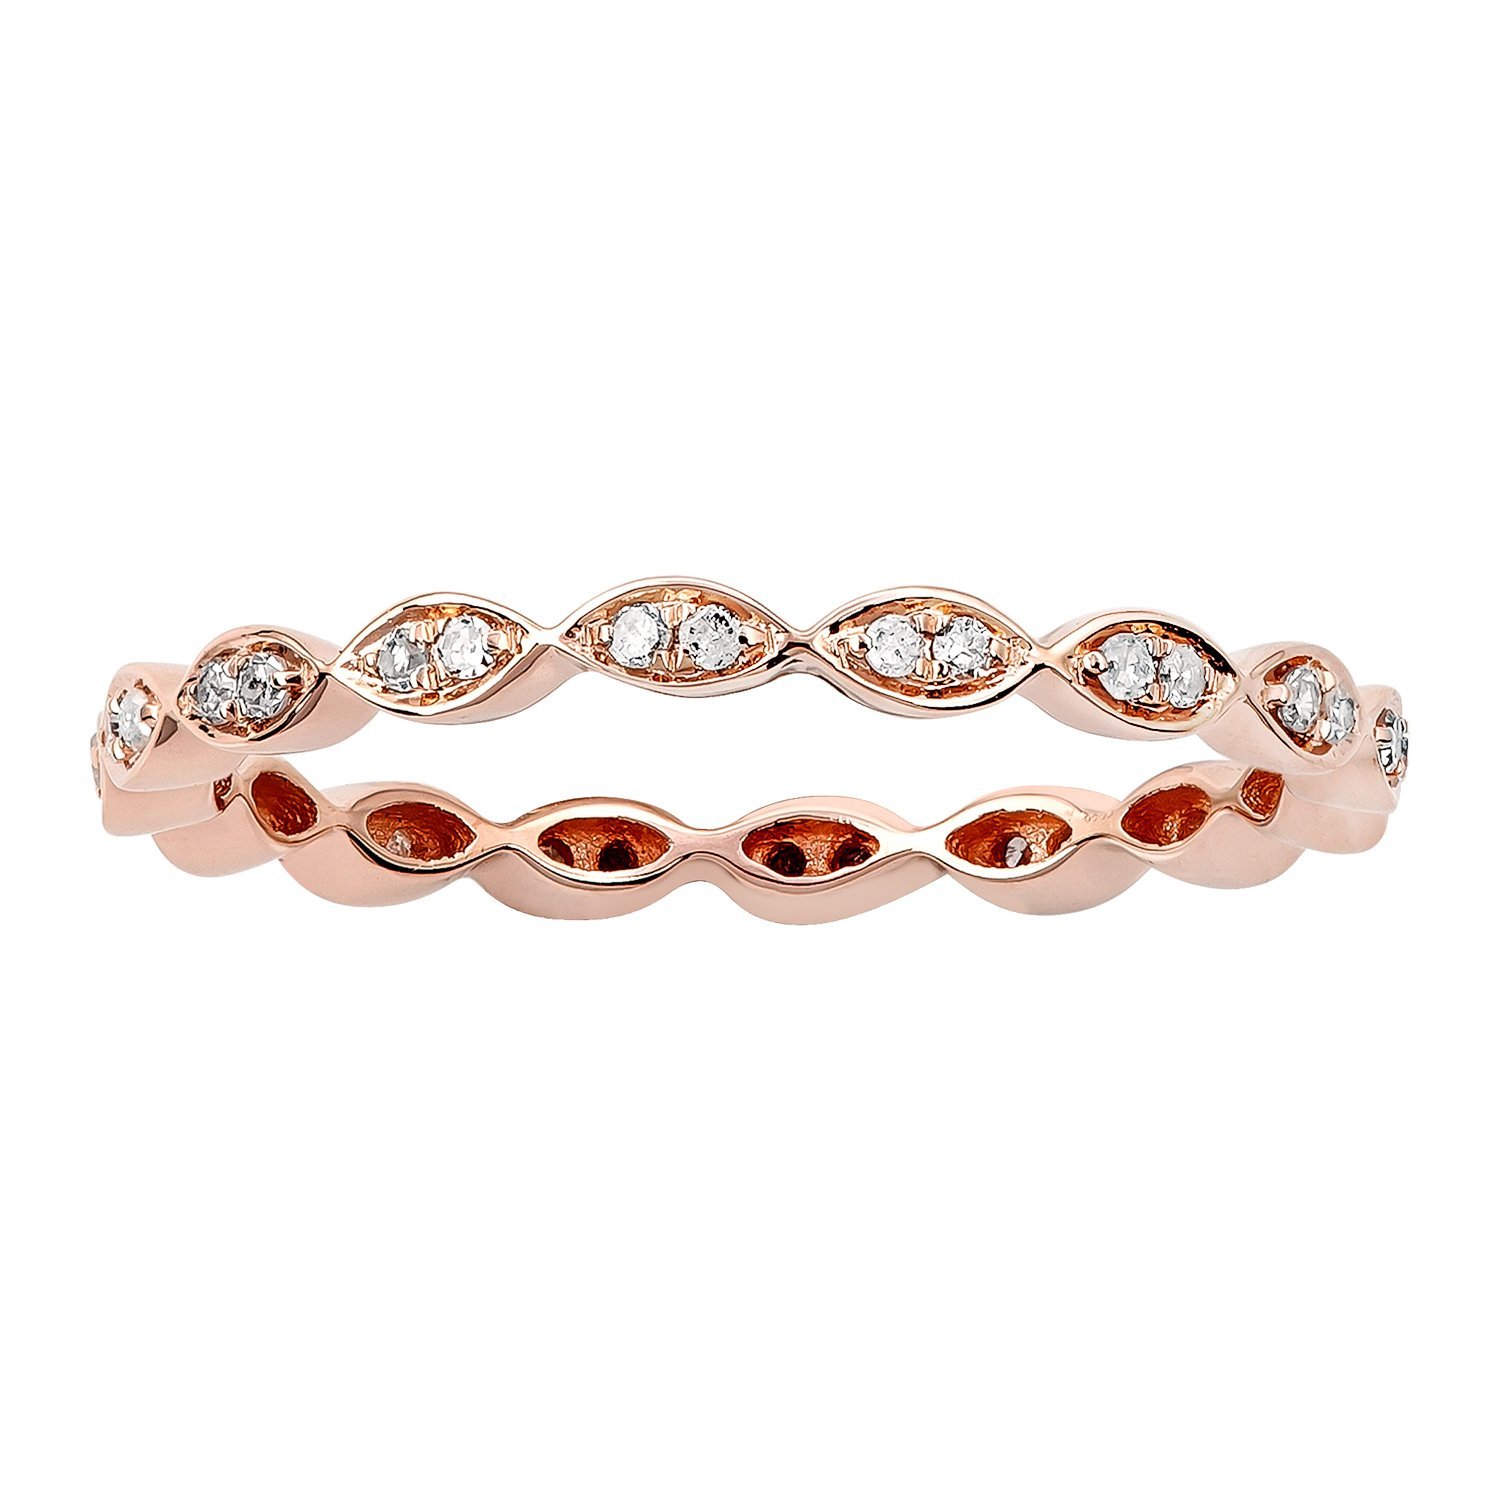 10k Rose Gold Stackable Eternity Diamond Wedding Band (1/4 cttw, I-J Color, I2-I3 Clarity)